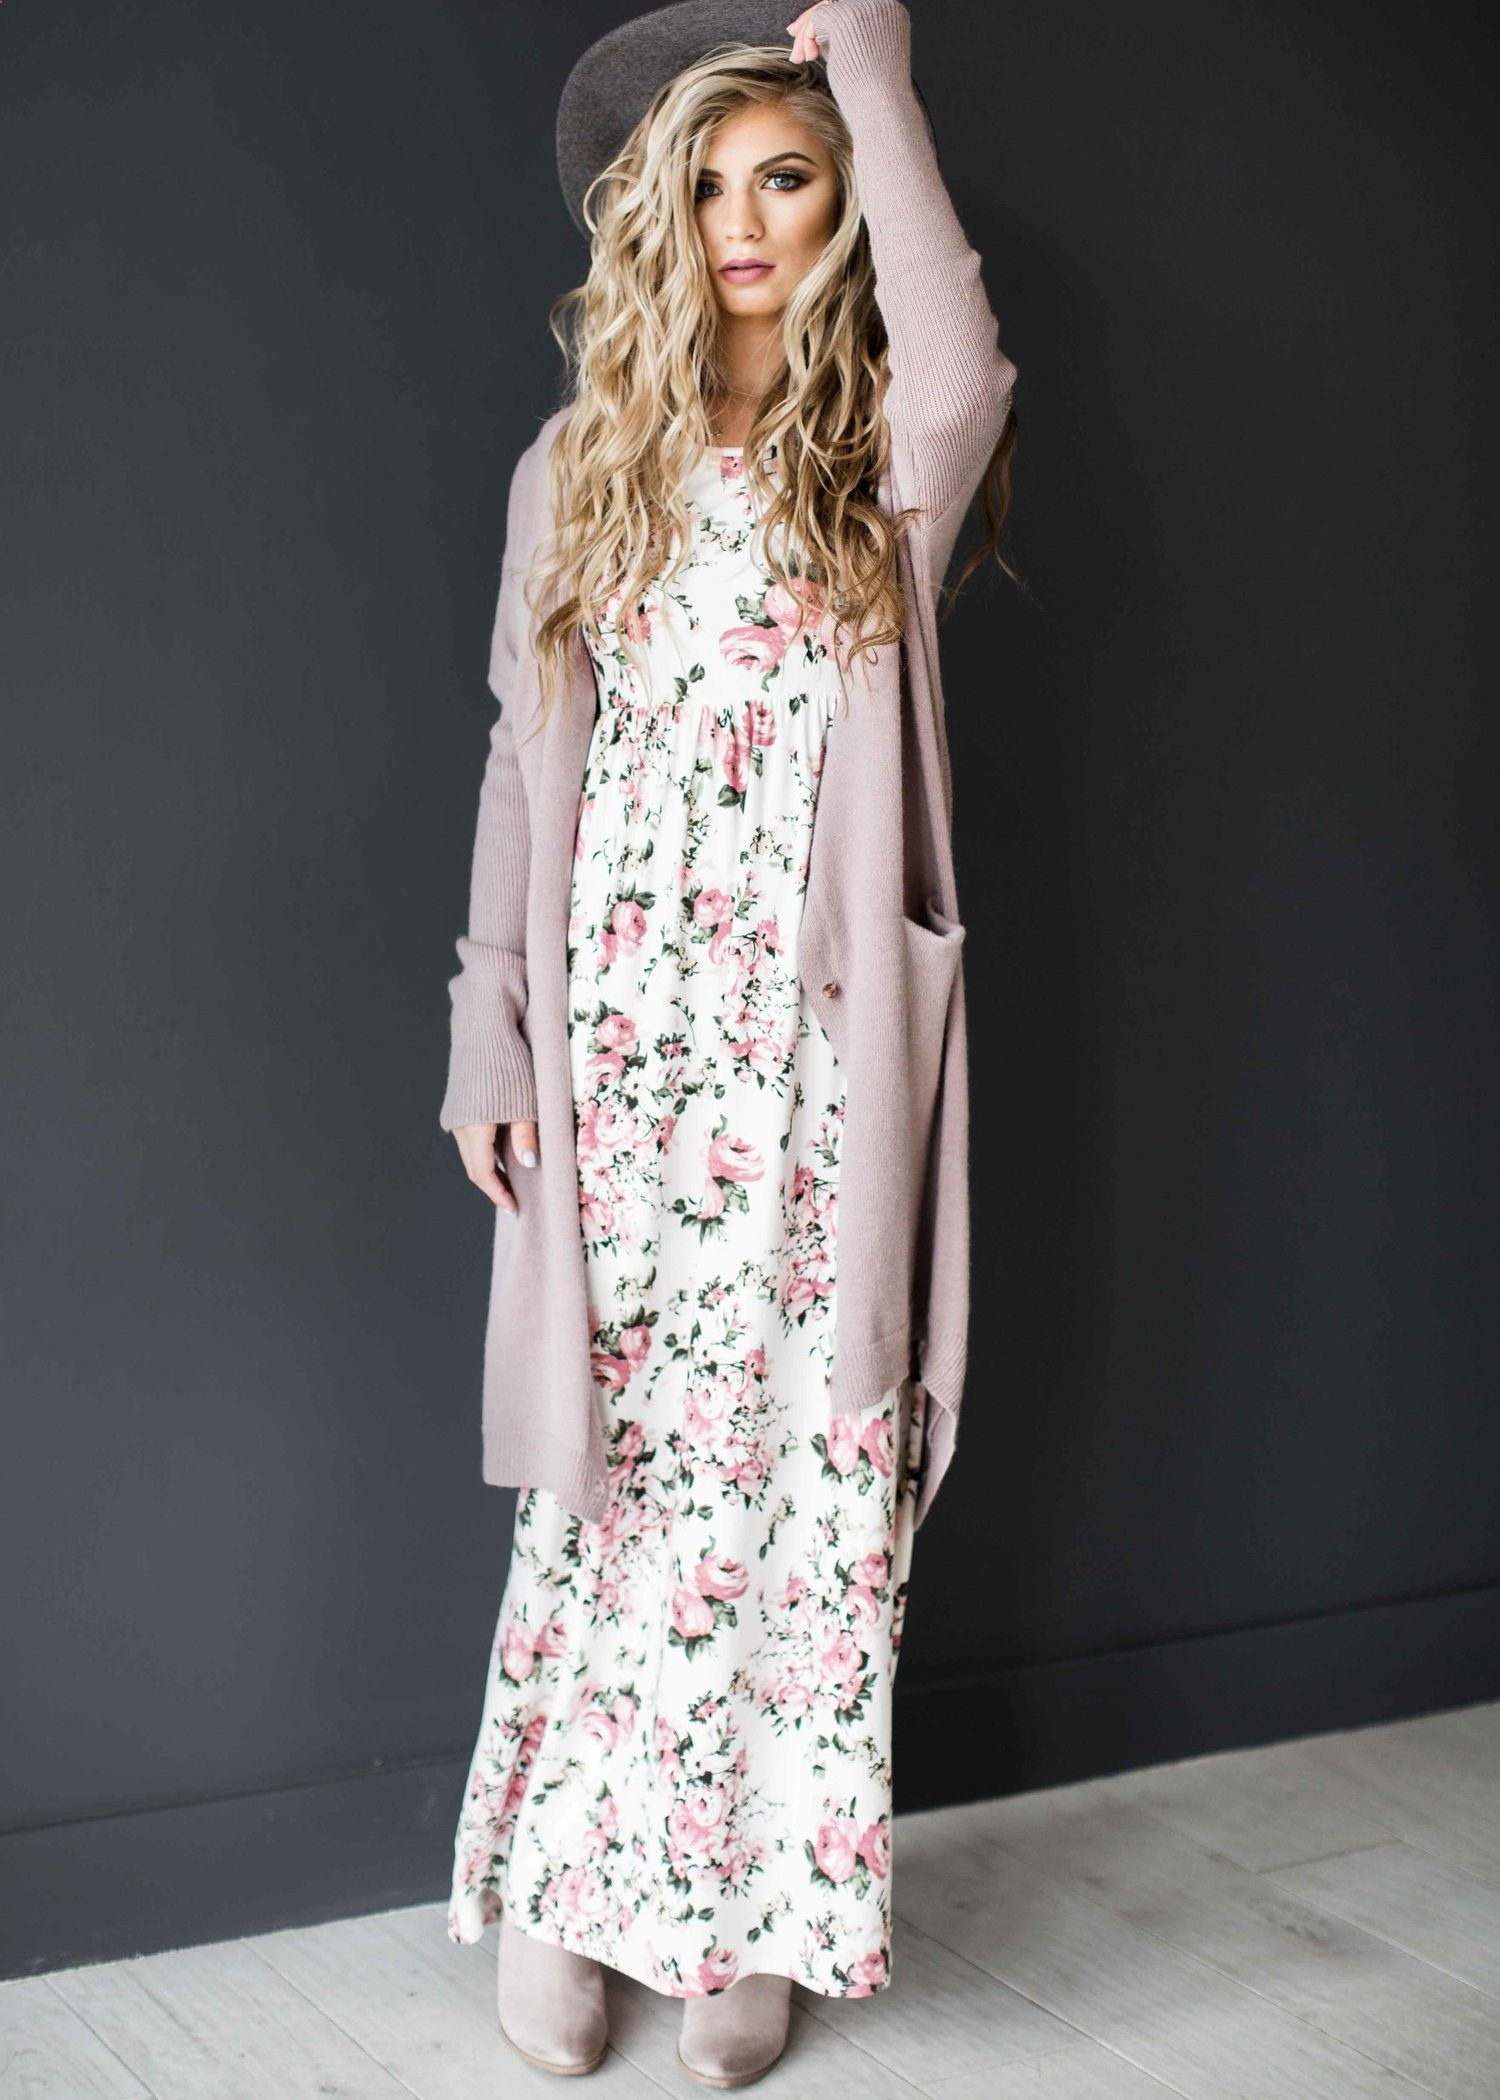 Floral dress blonde jessakae easter dress spring dress midi